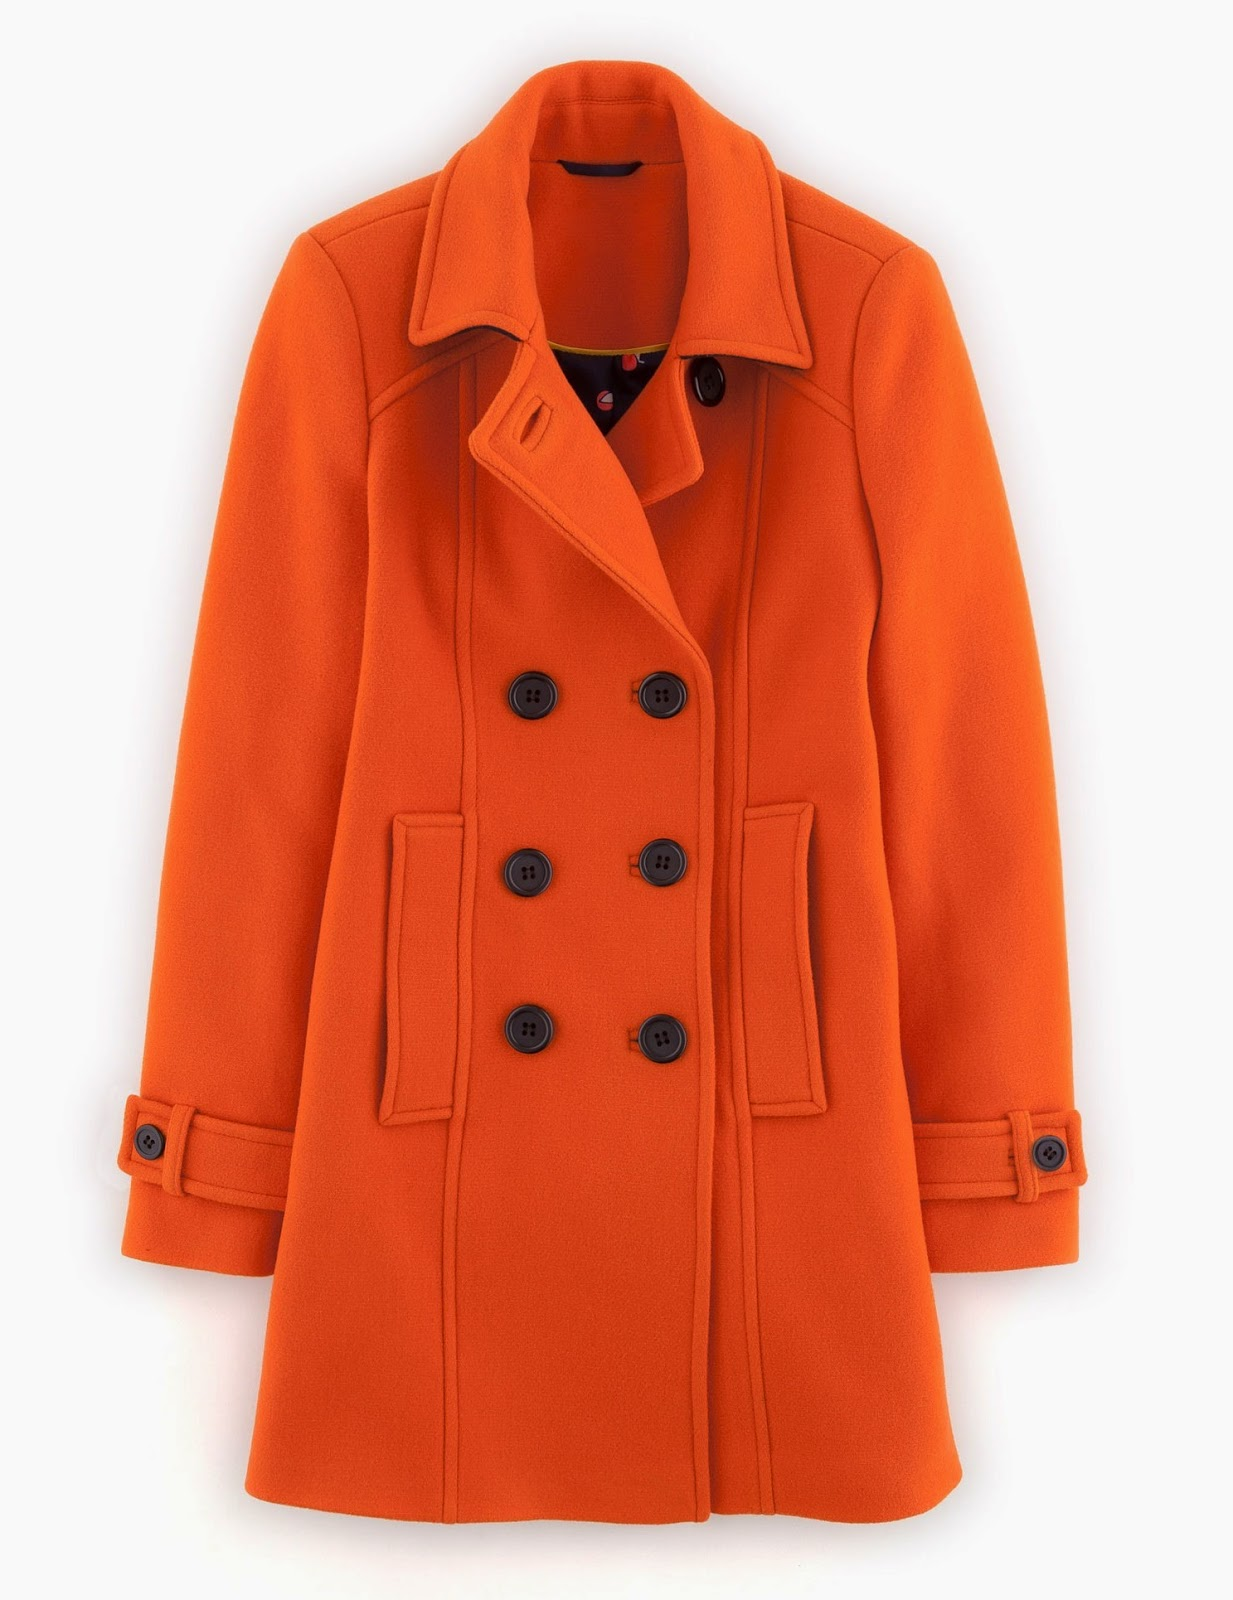 http://www.boden.co.uk/en-GB/Womens-Coats-Jackets/Coats/WE454-ORA/Womens-Orange-Peel-Ledbury-Pea-Coat.html